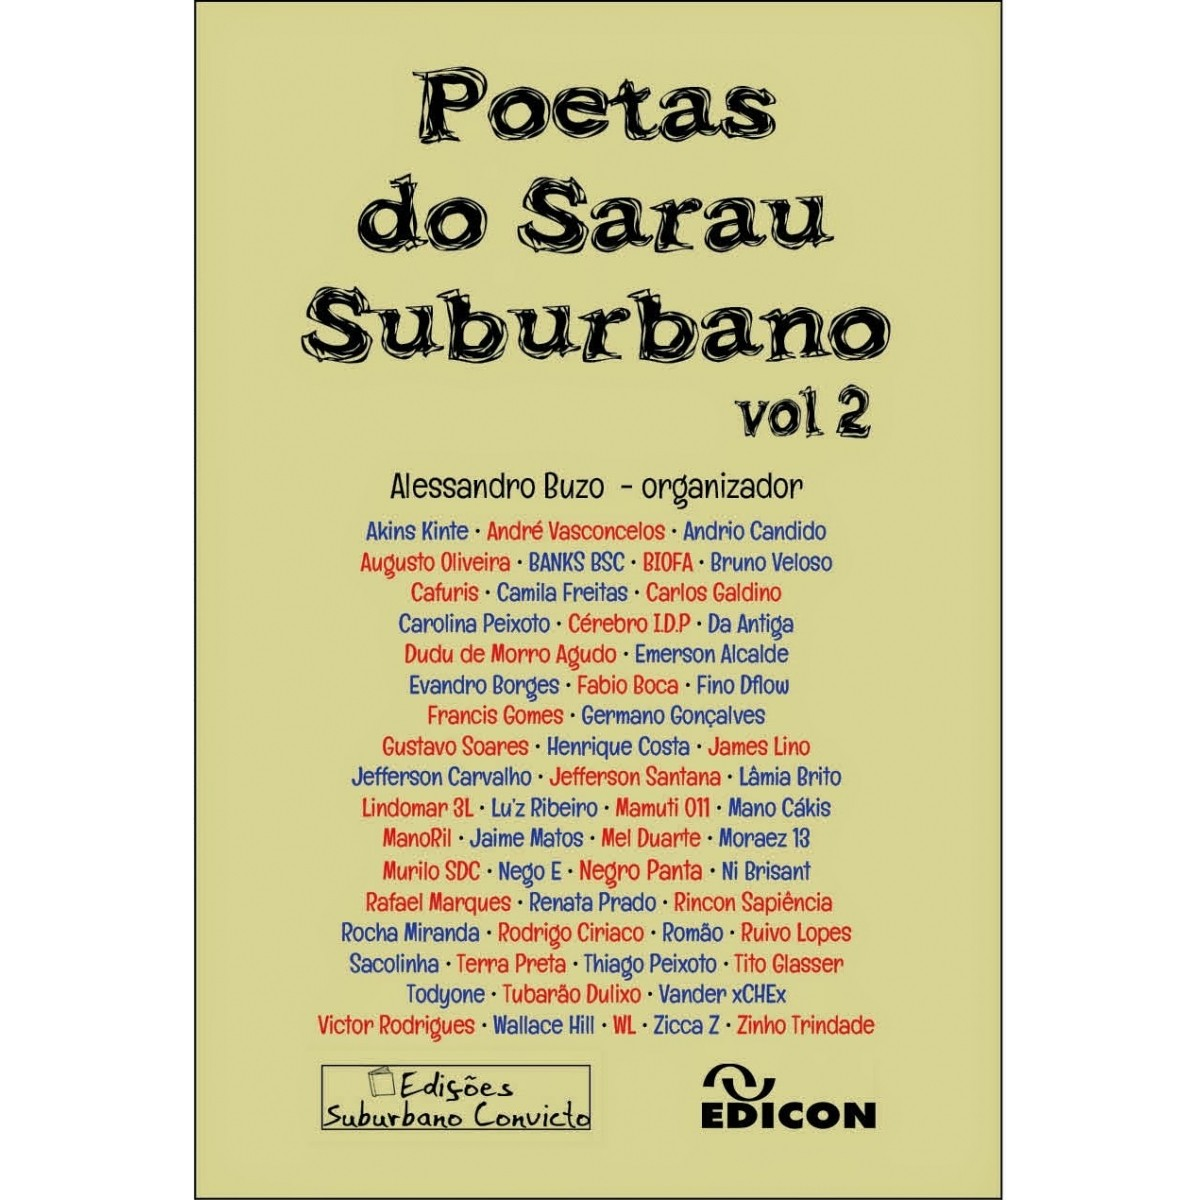 Poetas do Sarau Suburbano Vol. 2